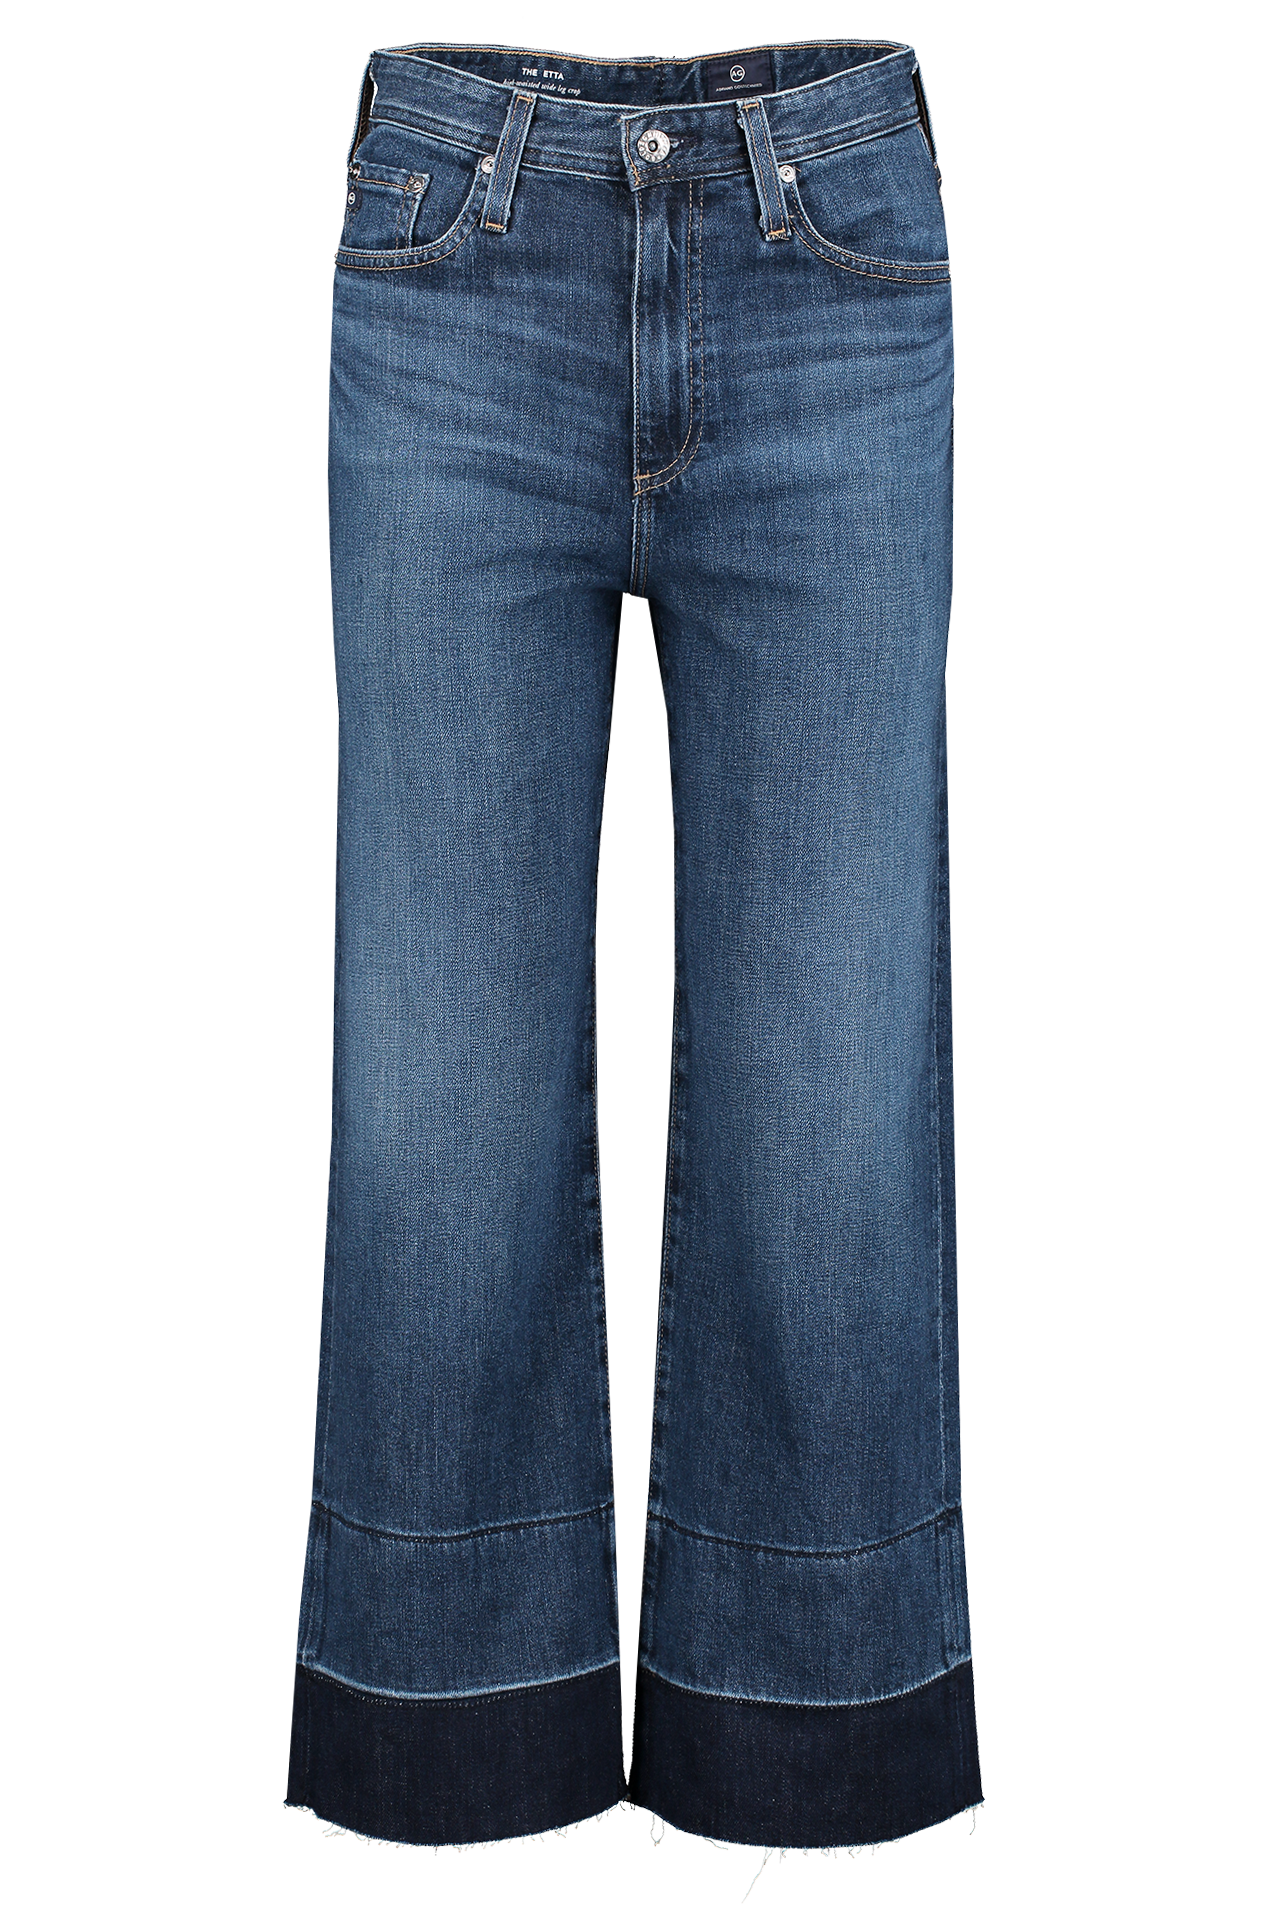 Front image of AG Women's Etta Denim Blue Glory